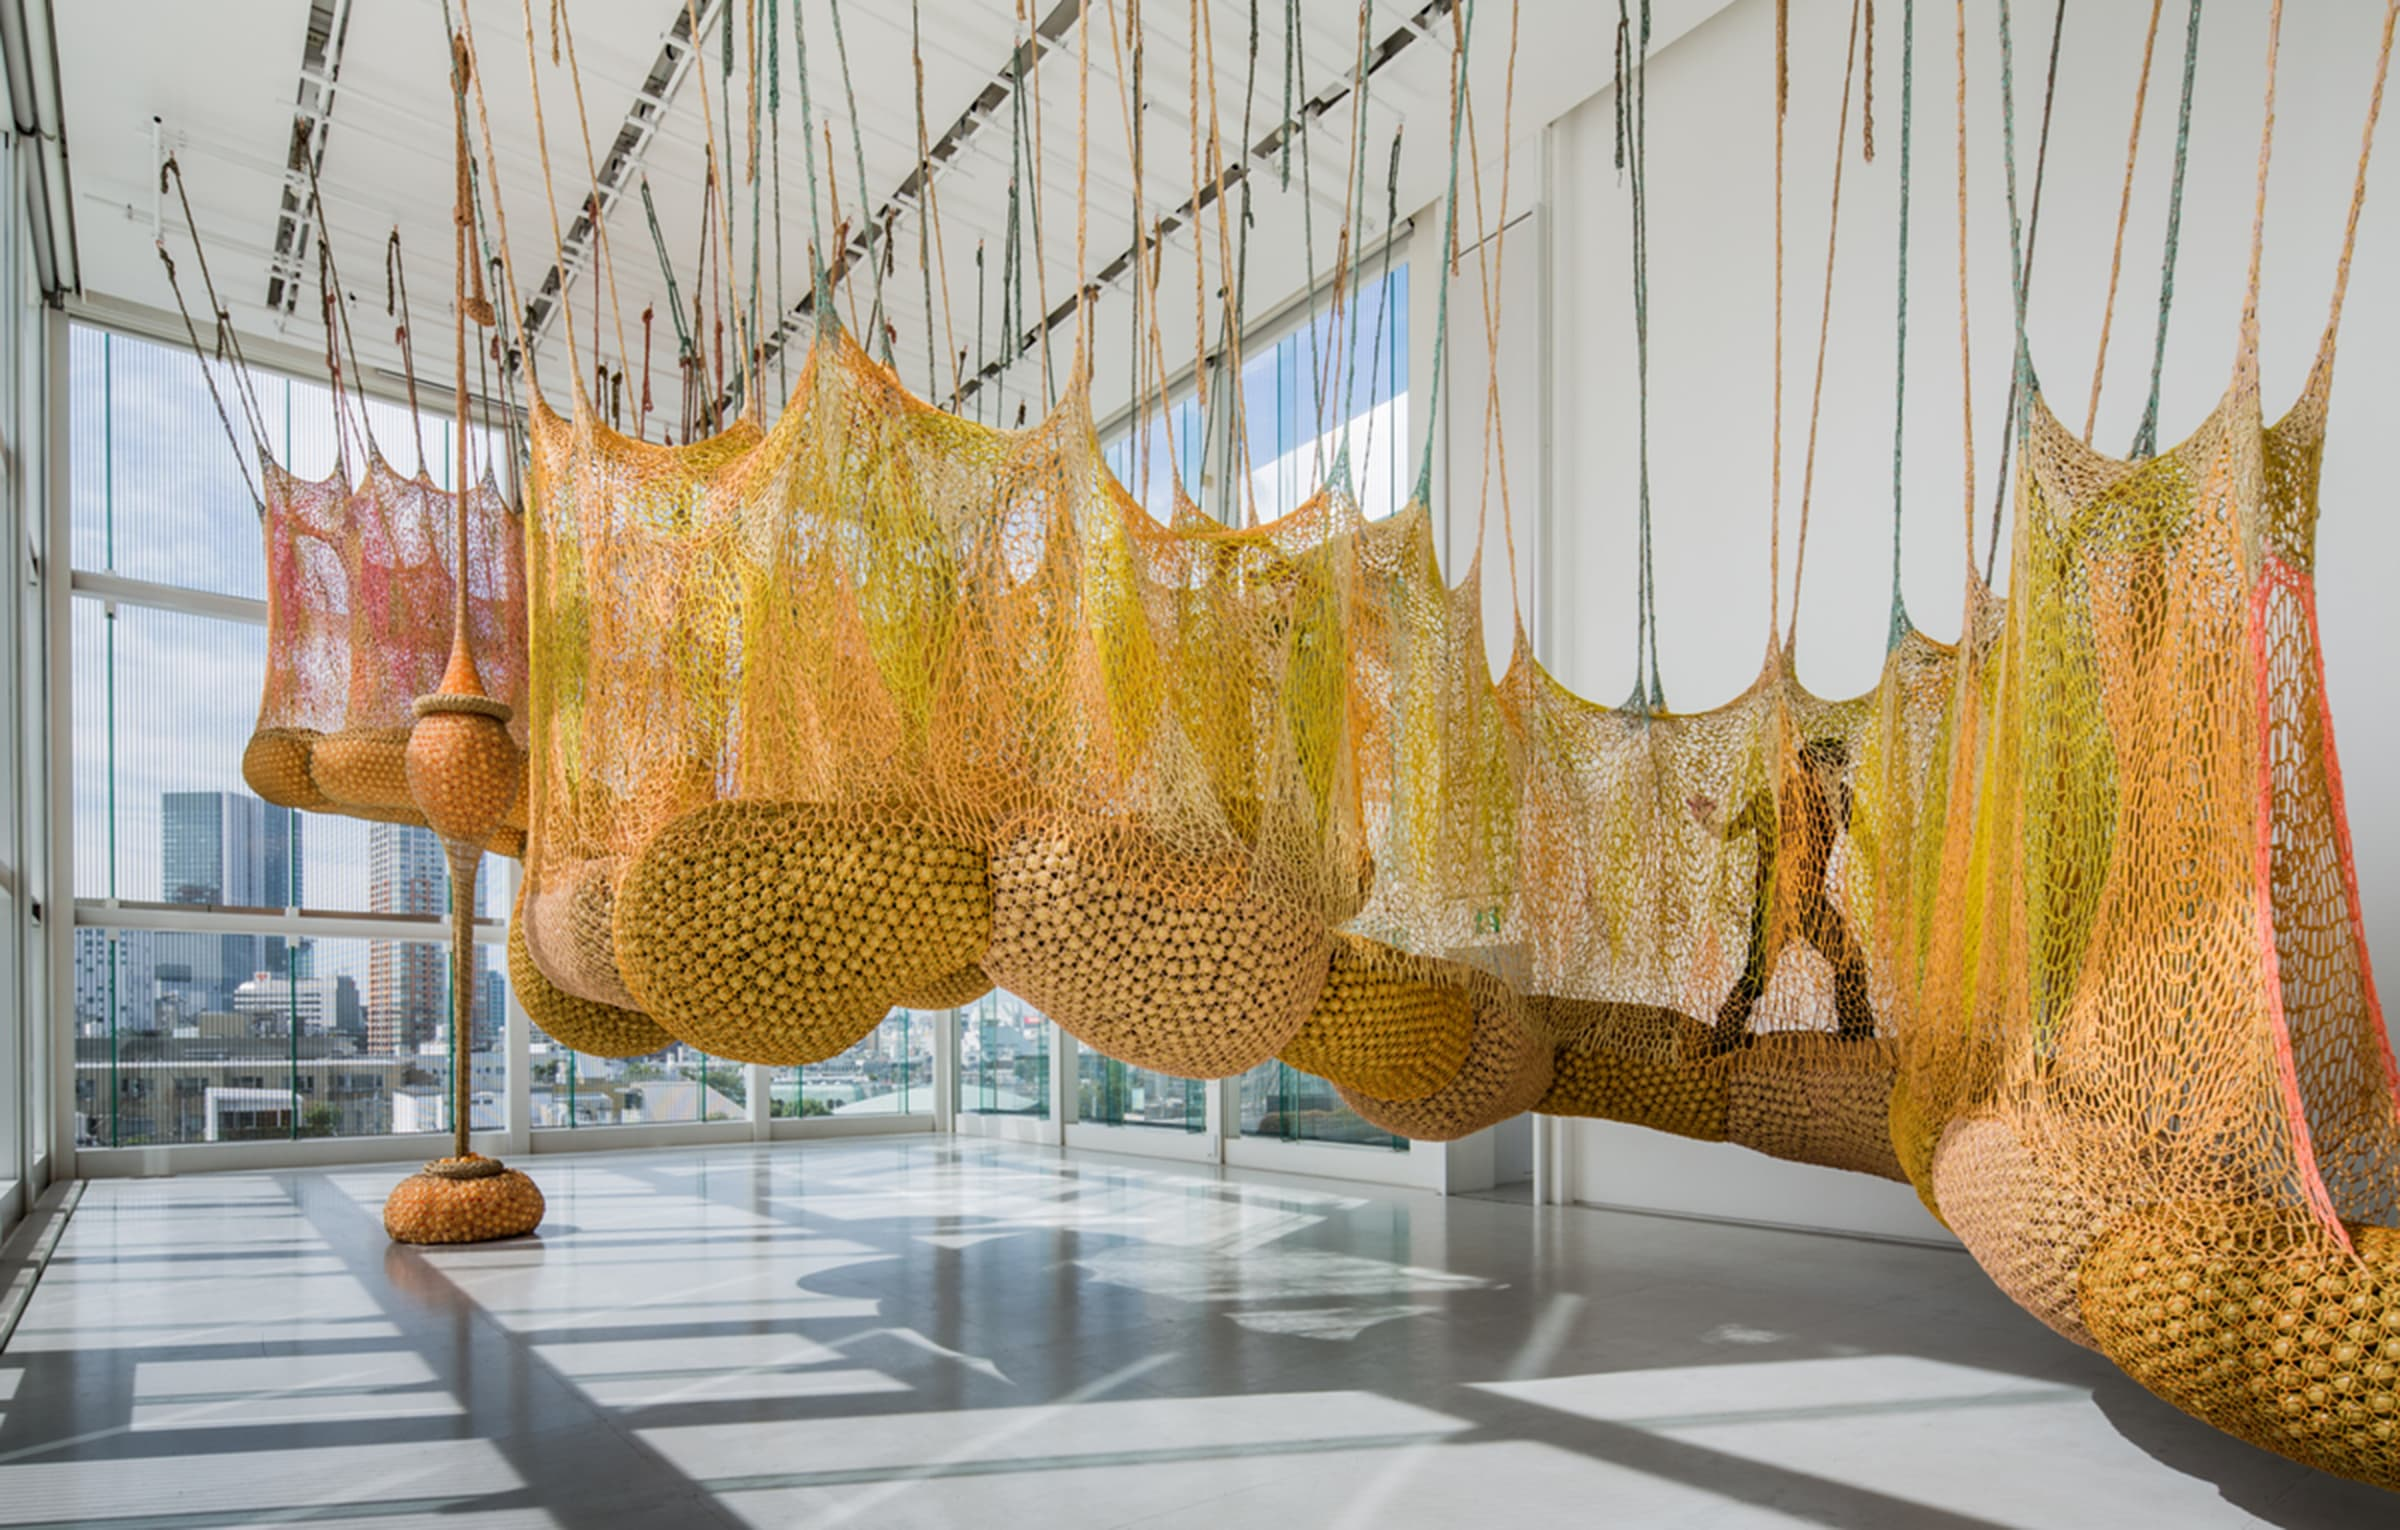 "<span class=""link fancybox-details-link""><a href=""/artists/37-ernesto-neto/works/15108/"">View Detail Page</a></span><div class=""artist""><strong>ERNESTO NETO</strong></div> <div class=""title""><em>Life is a Body we are Part of</em>, 2012</div> <div class=""medium"">polypropylene + polyester string and plastic balls</div> <div class=""dimensions"">780 x 786 x 1486 cm</div>"